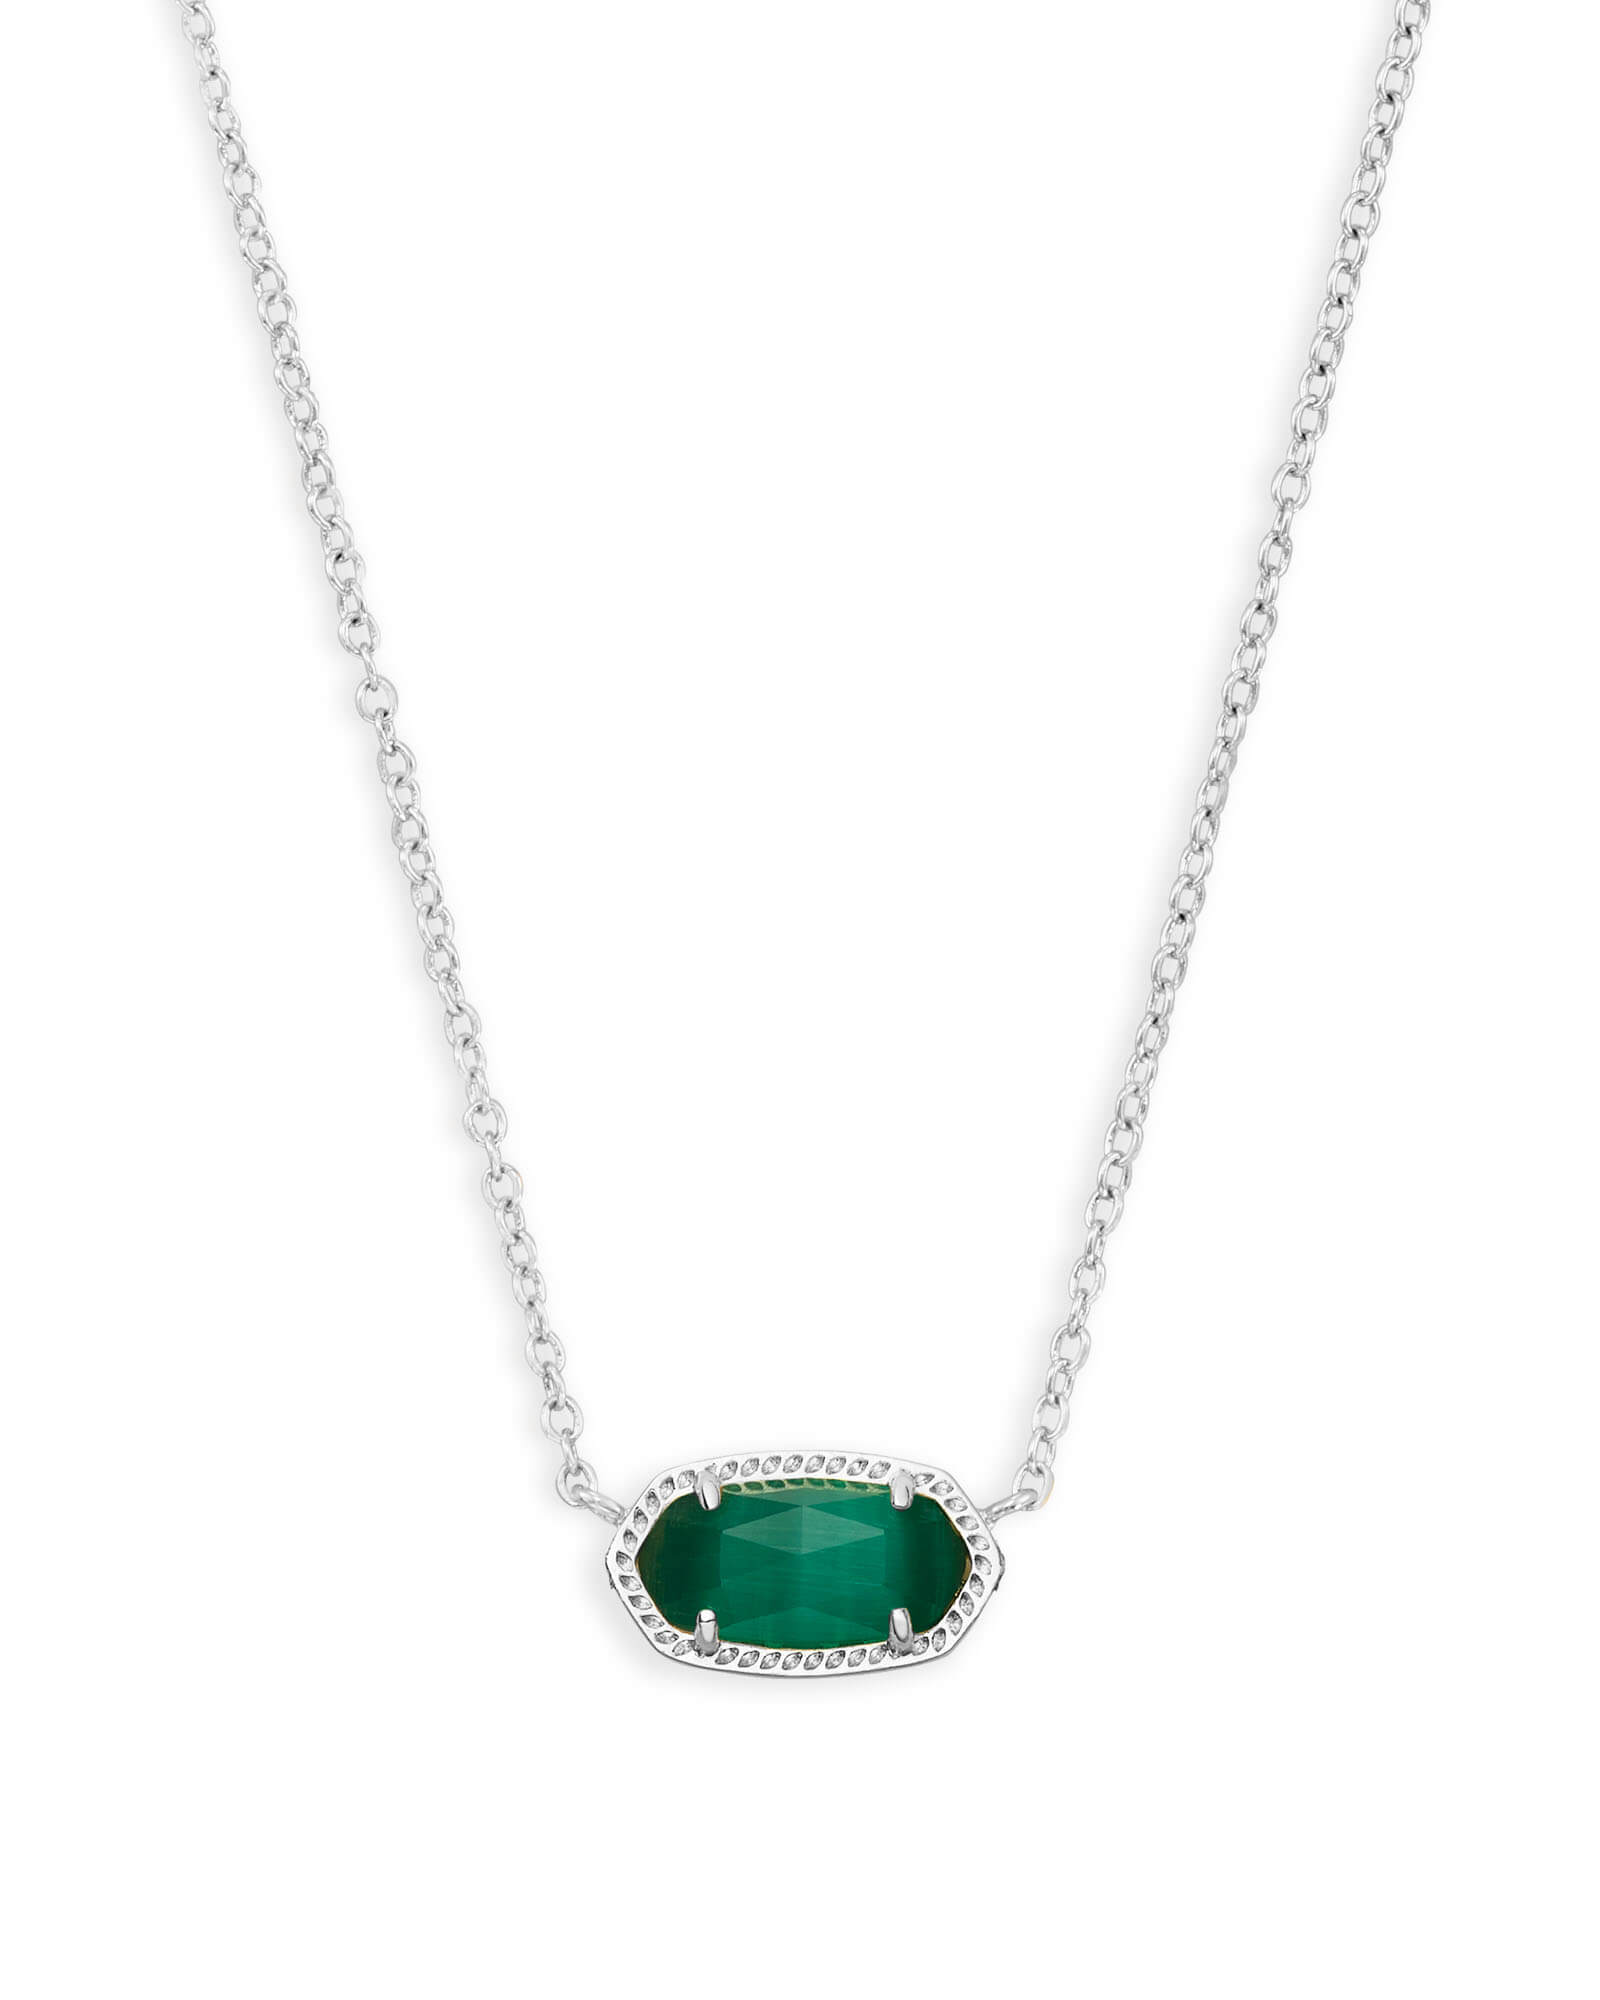 Elisa Silver Pendant Necklace in Emerald Cats Eye